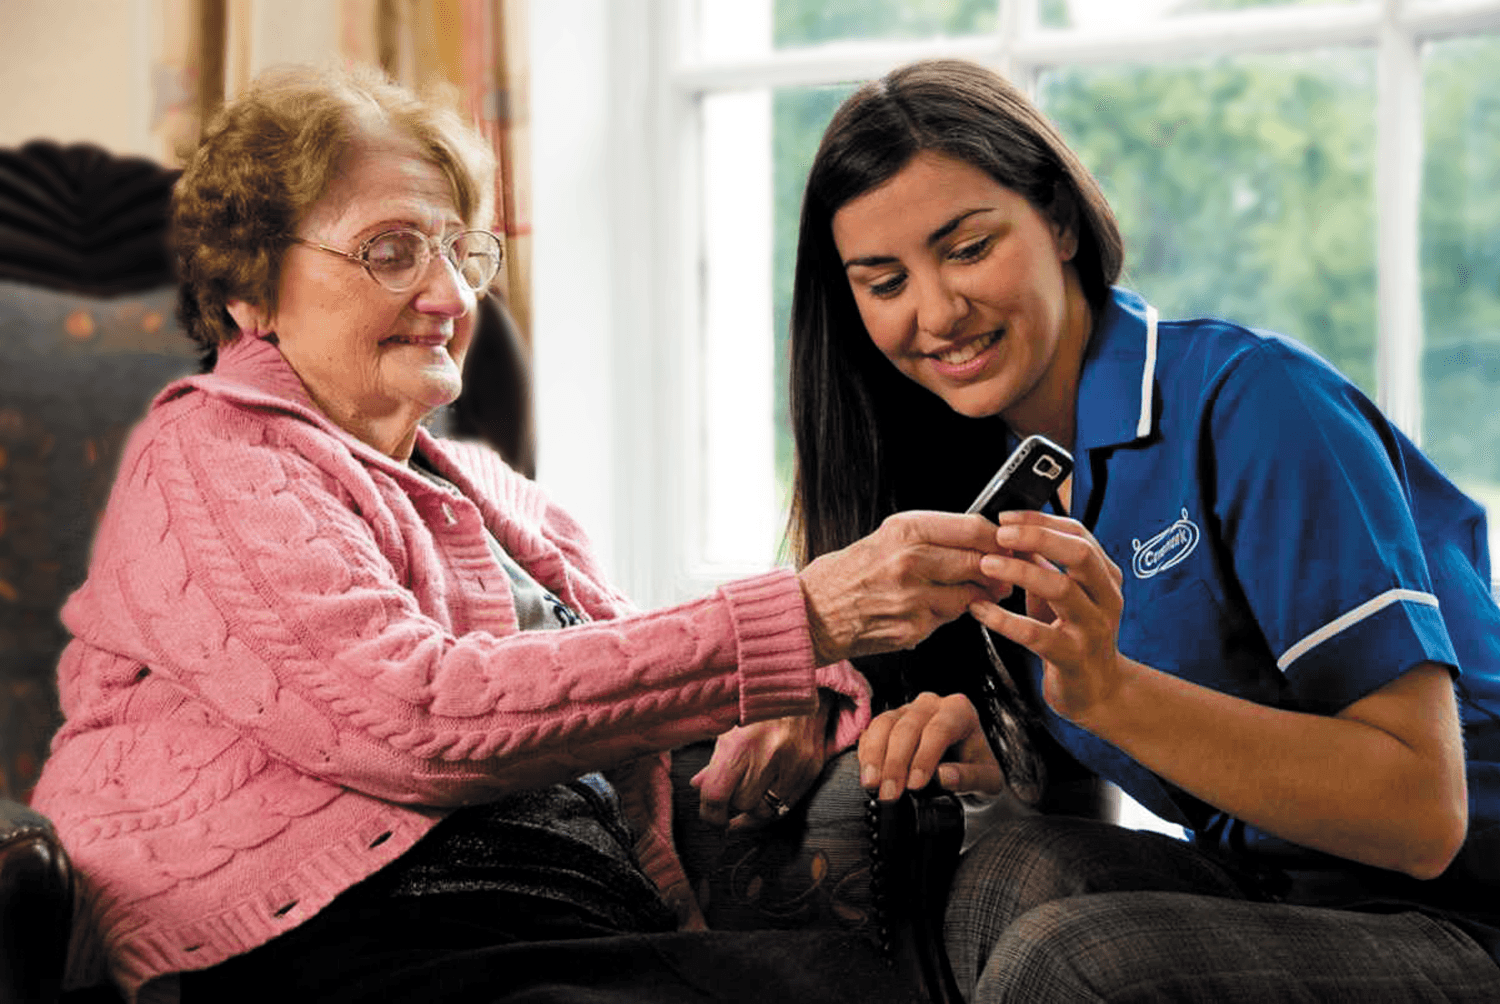 Caremark's home care support